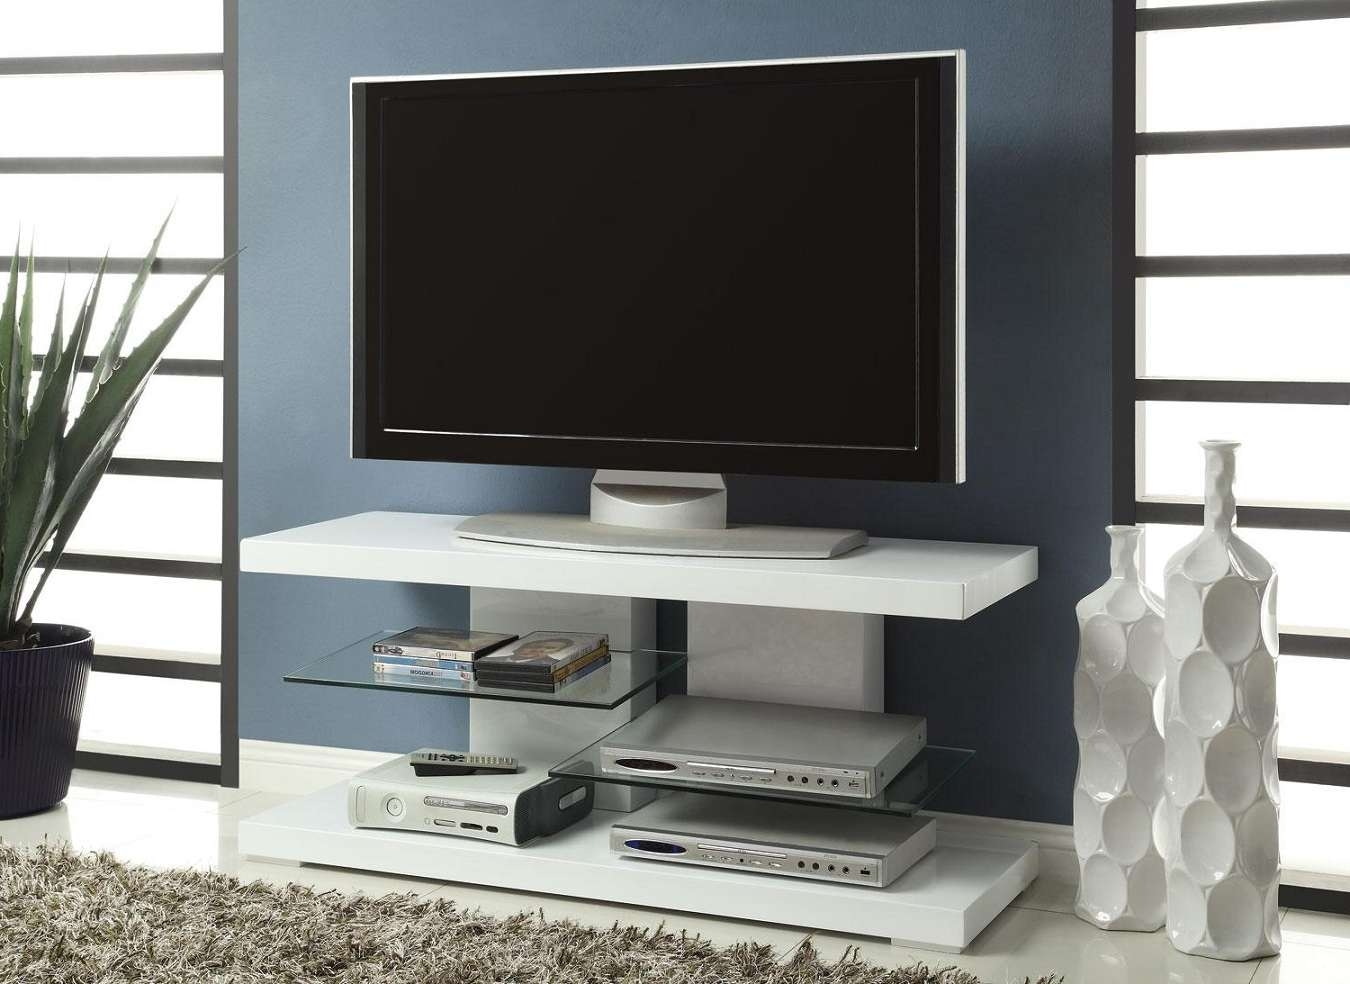 White Painted Plywood Flat Screen Tv Stand With Tempered Glass Throughout Contemporary Tv Stands For Flat Screens (View 14 of 15)